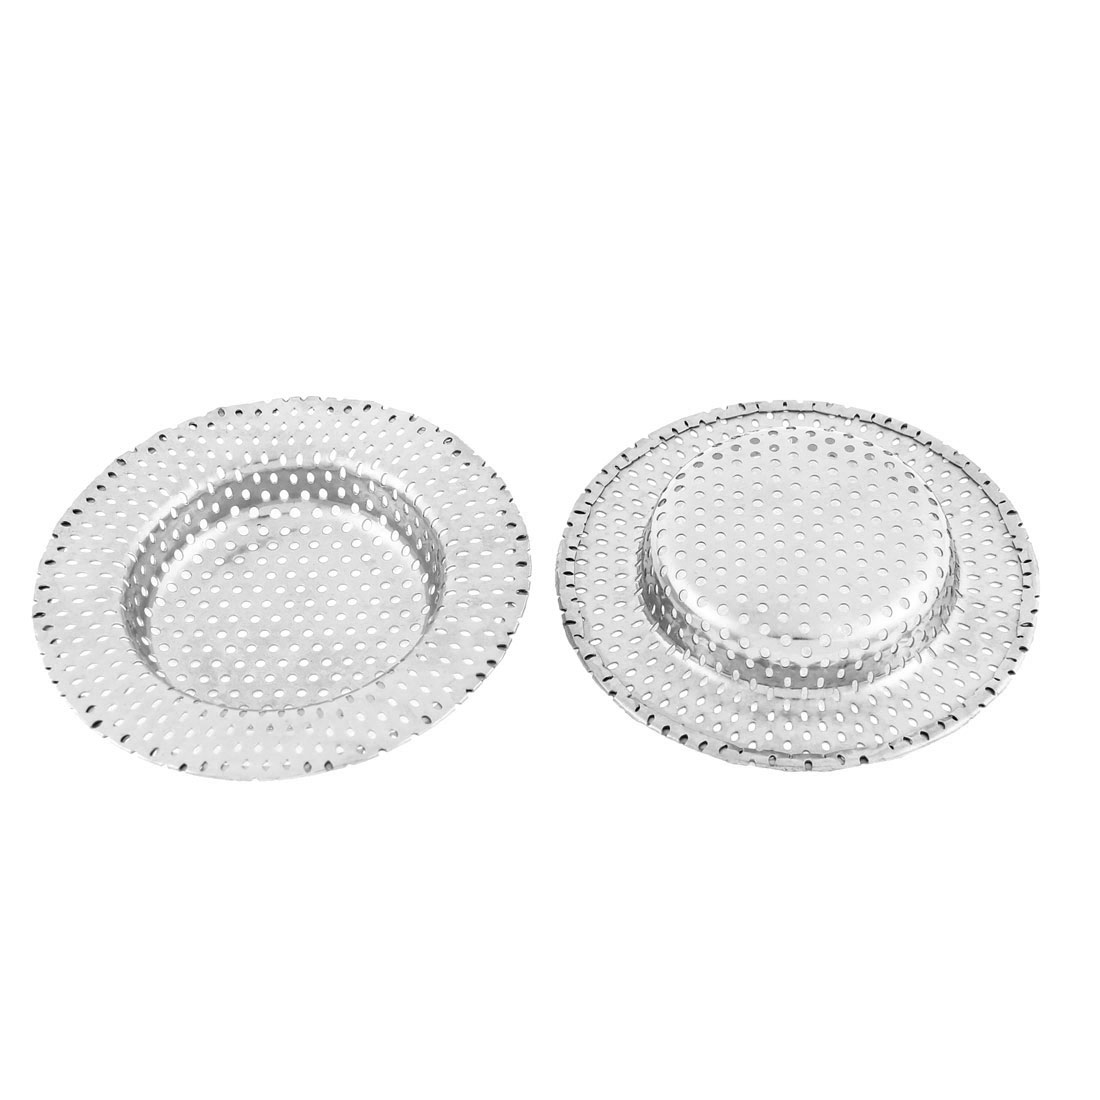 Bathroom Kitchen Sink Basin Drain Strainer Stopper 90mm Dia 2pcs